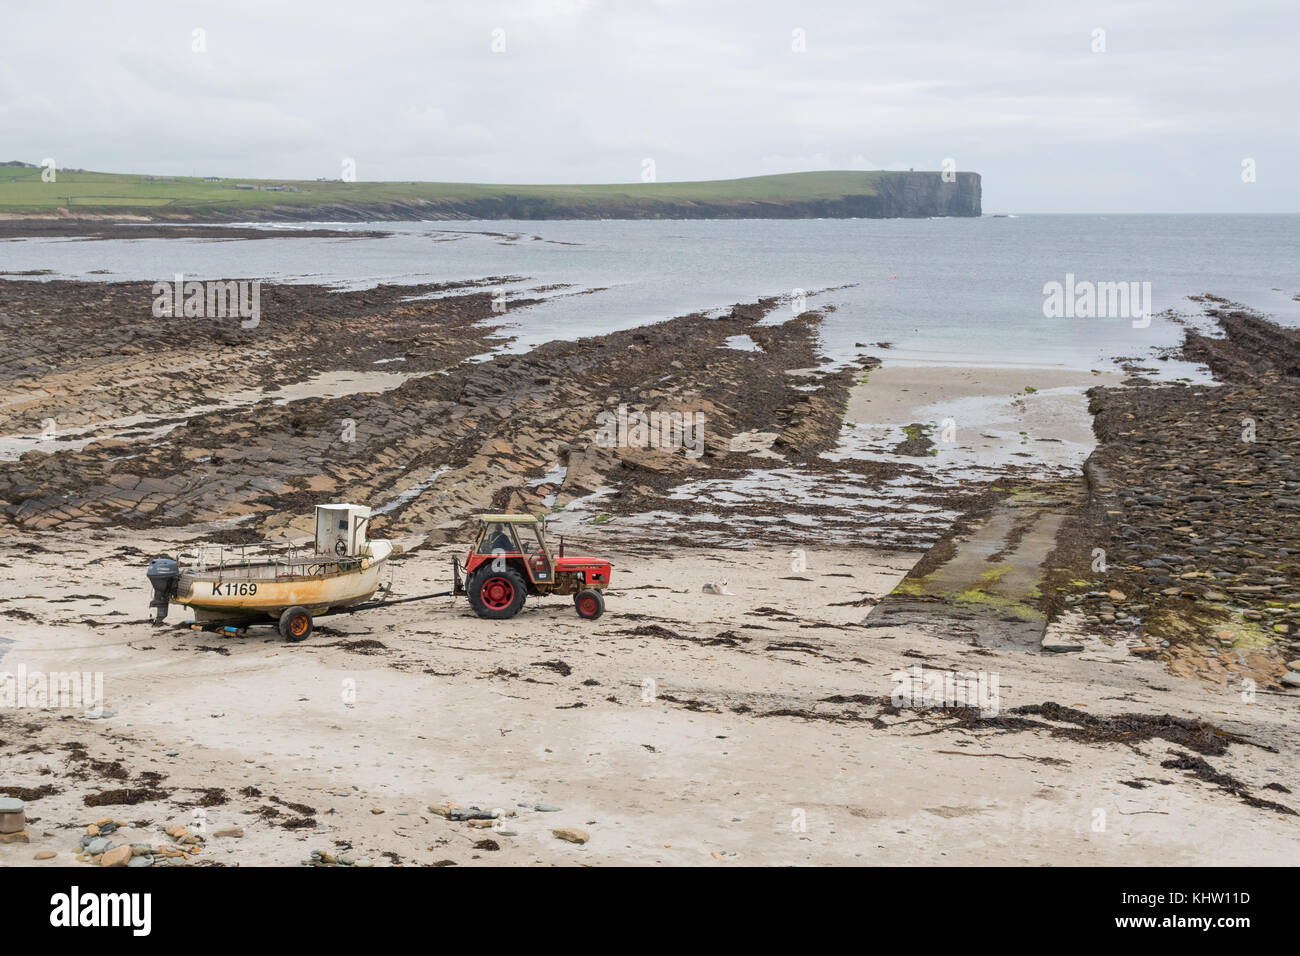 Tractor Pull Boats : Boat tractor stock photos images alamy